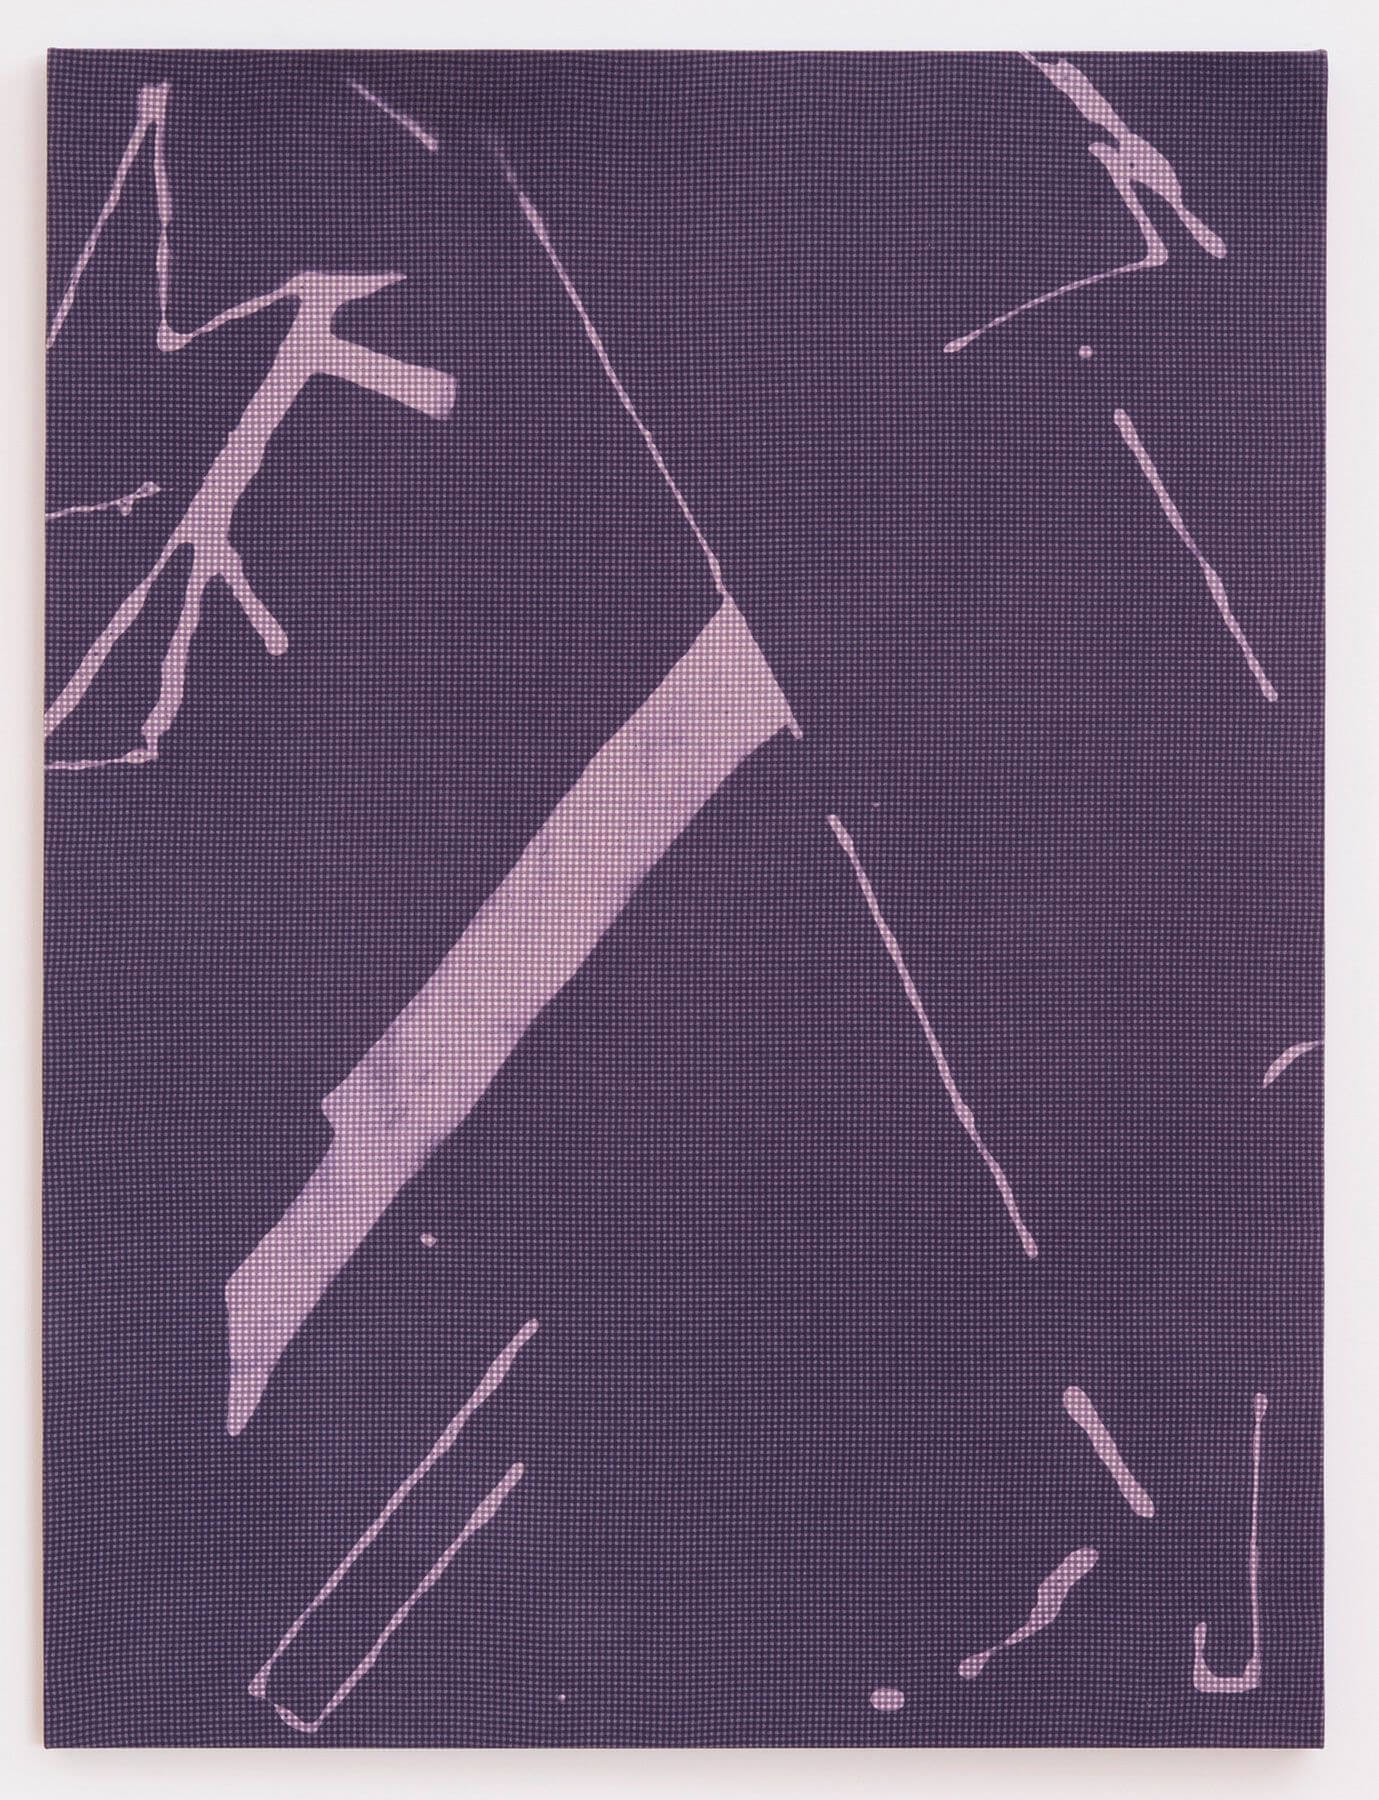 Cheryl Donegan                                             'Untitled Resist (faded navy and pink)', 2014                                             48 x 36 Inches                                             dyed cotton